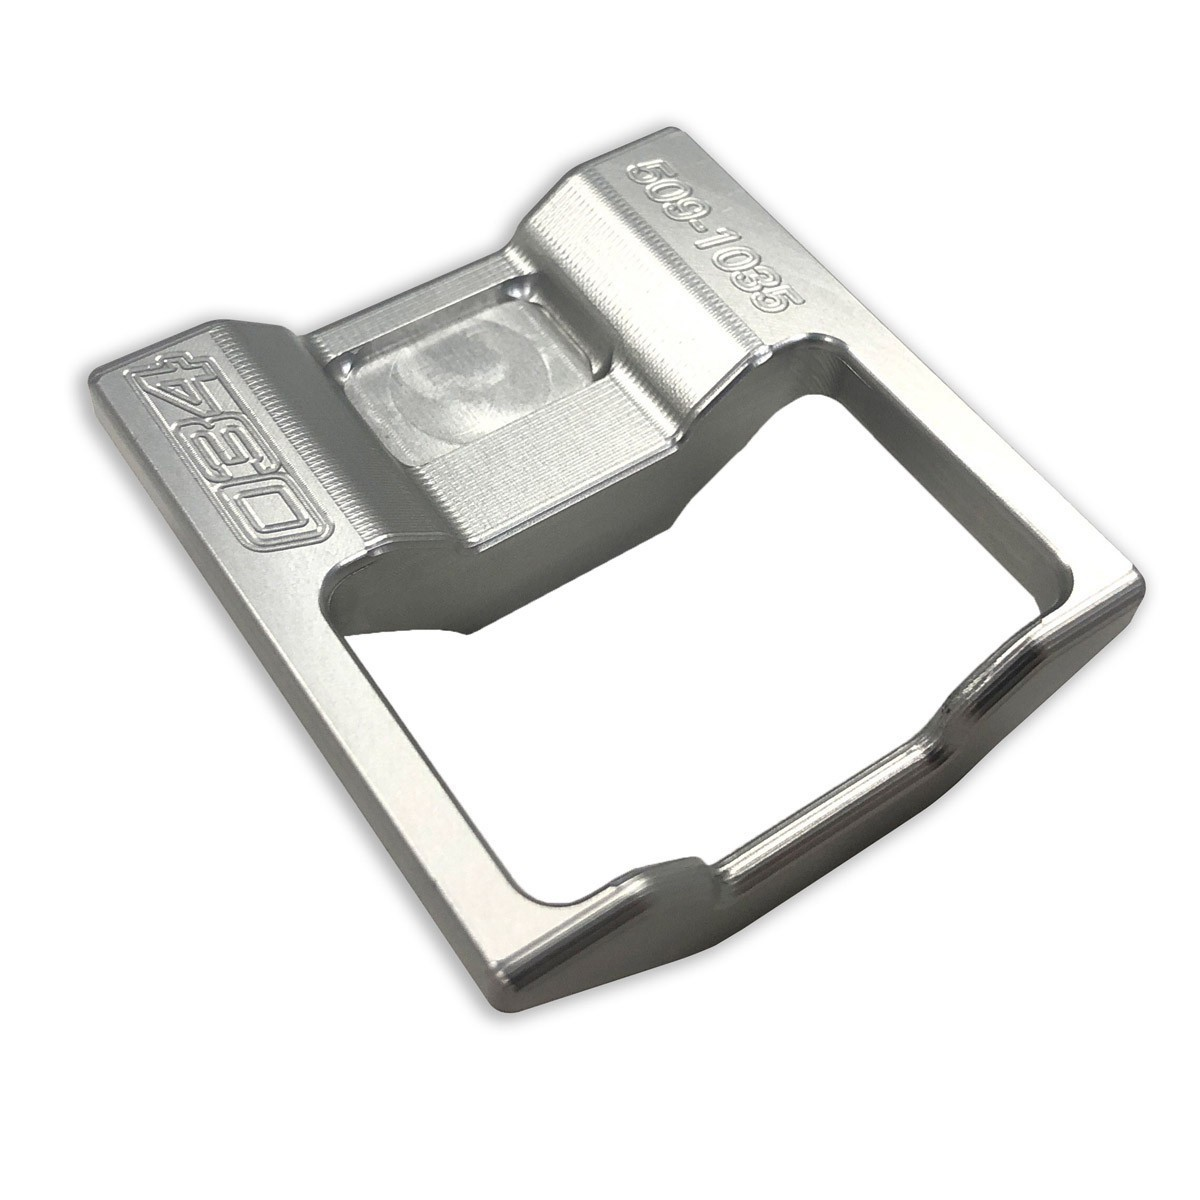 034 Billet Aluminum Upper Dogbone Mount Insert for MQB